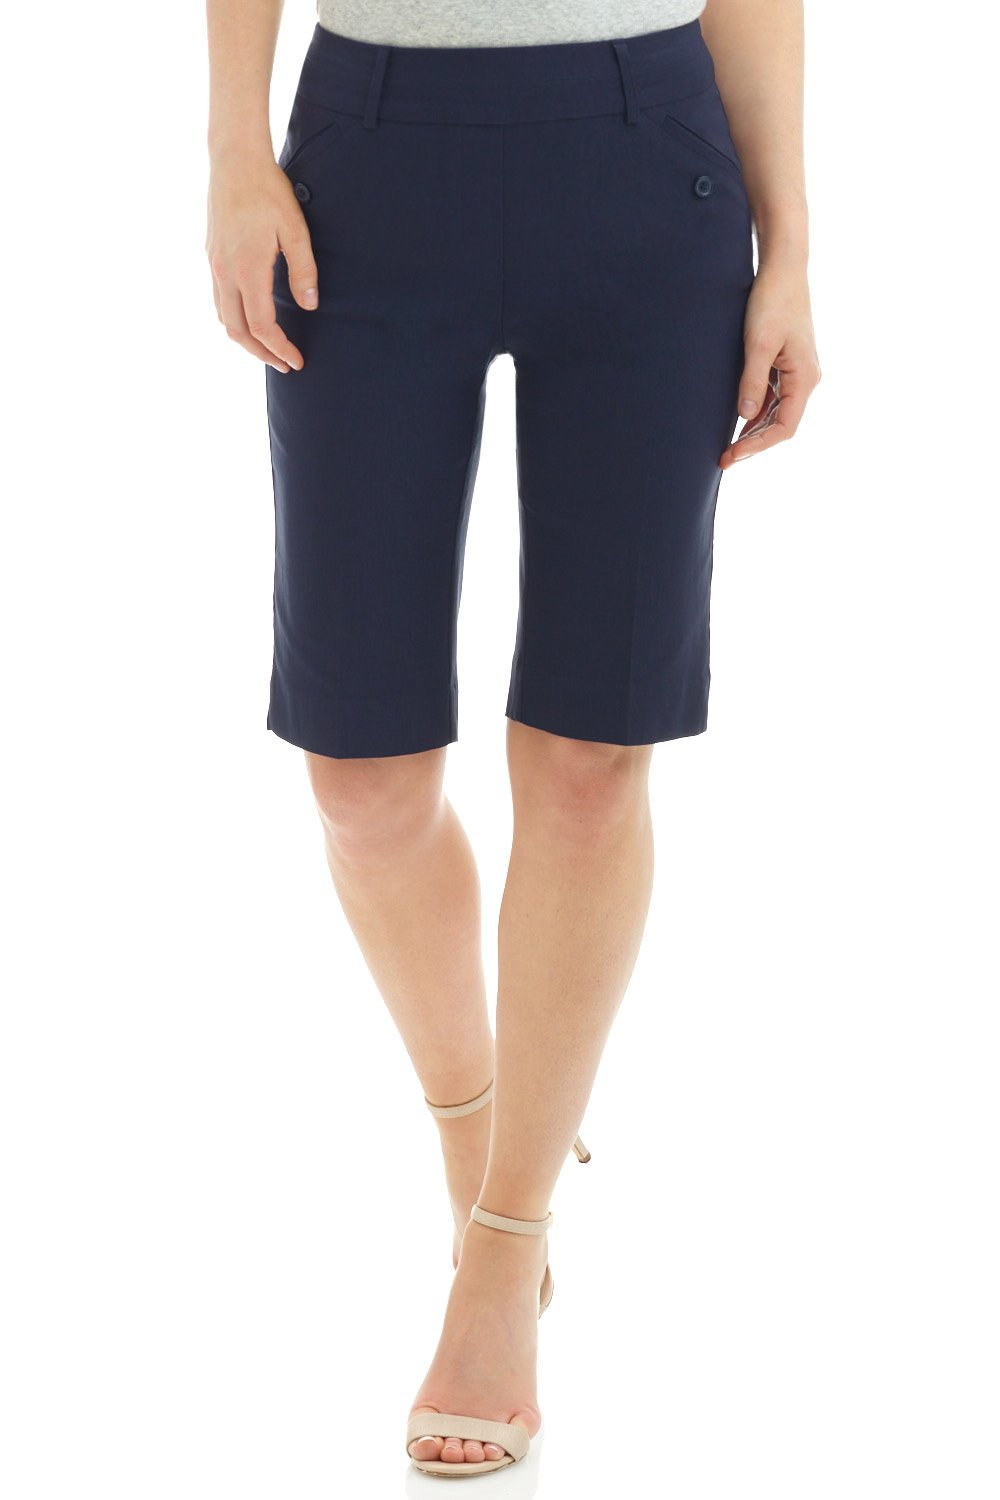 Rekucci Women's Ease in to Comfort Fit Modern Pull On Bermuda Short with Pockets (12,Navy)